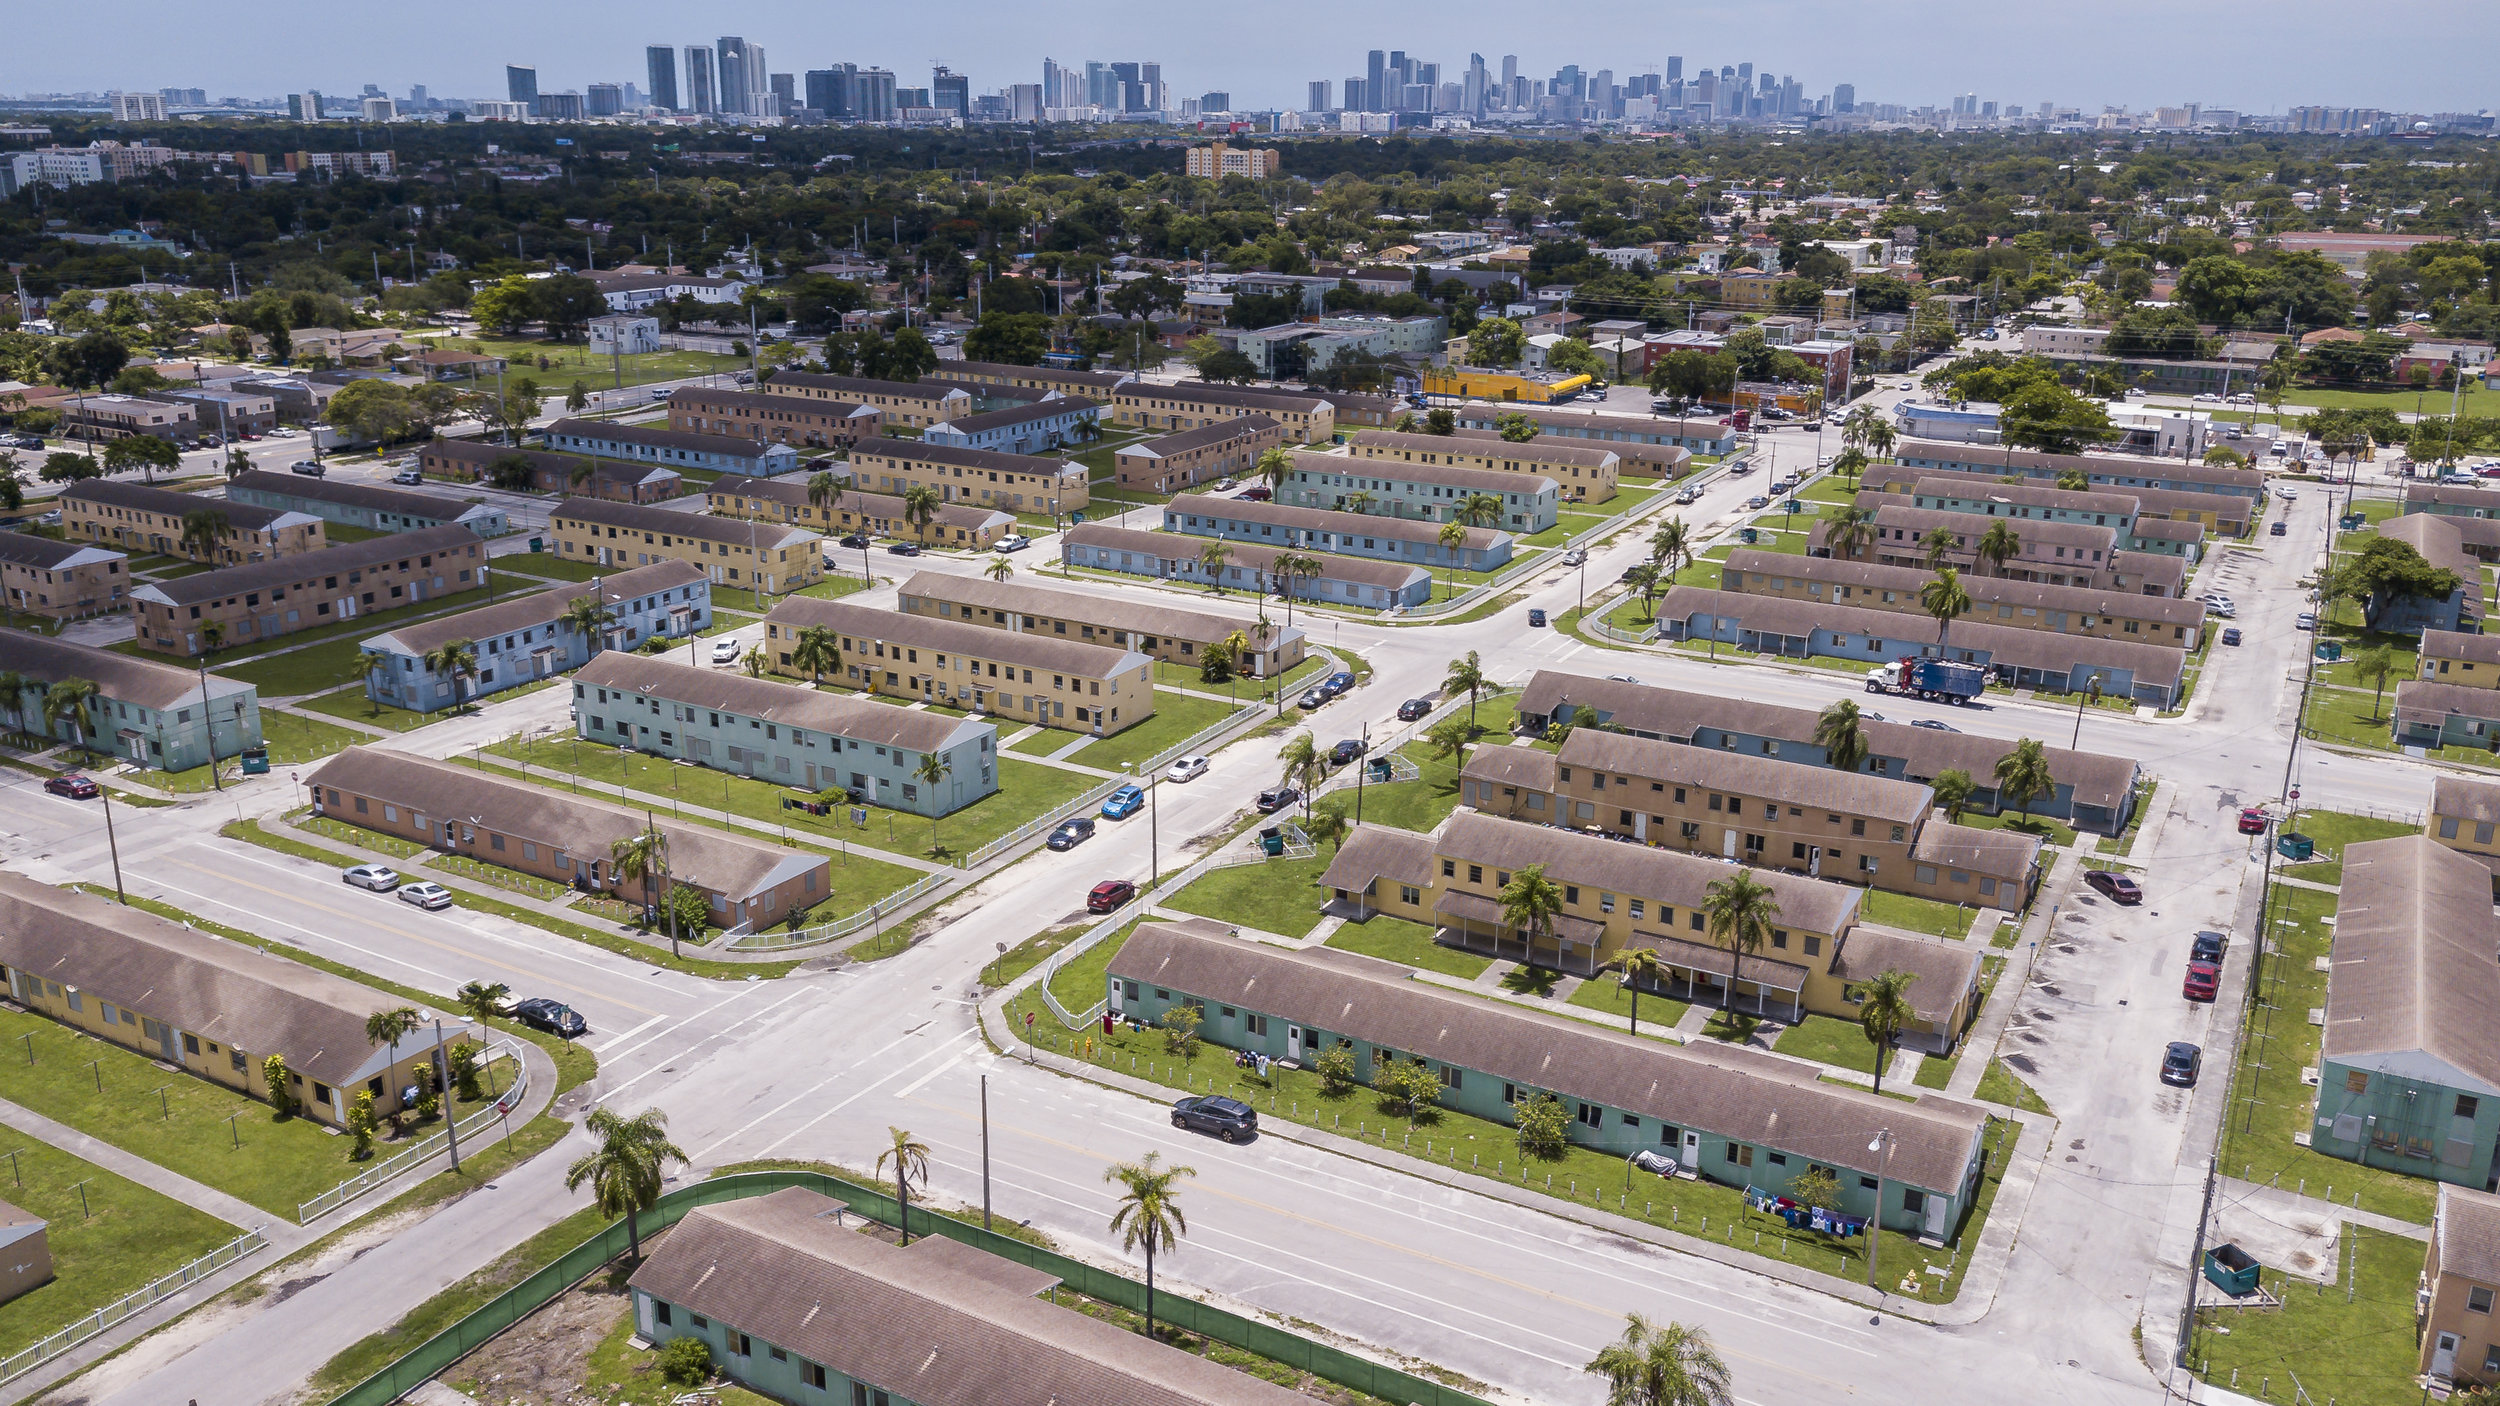 Aerial view of Liberty Square in Miami, Florida on Monday, July 1, 2019. Liberty Square is one of the oldest public housing developments in the U.S. and is being redeveloped. It will eventually include 1,455 new units, from public housing to market-rate.